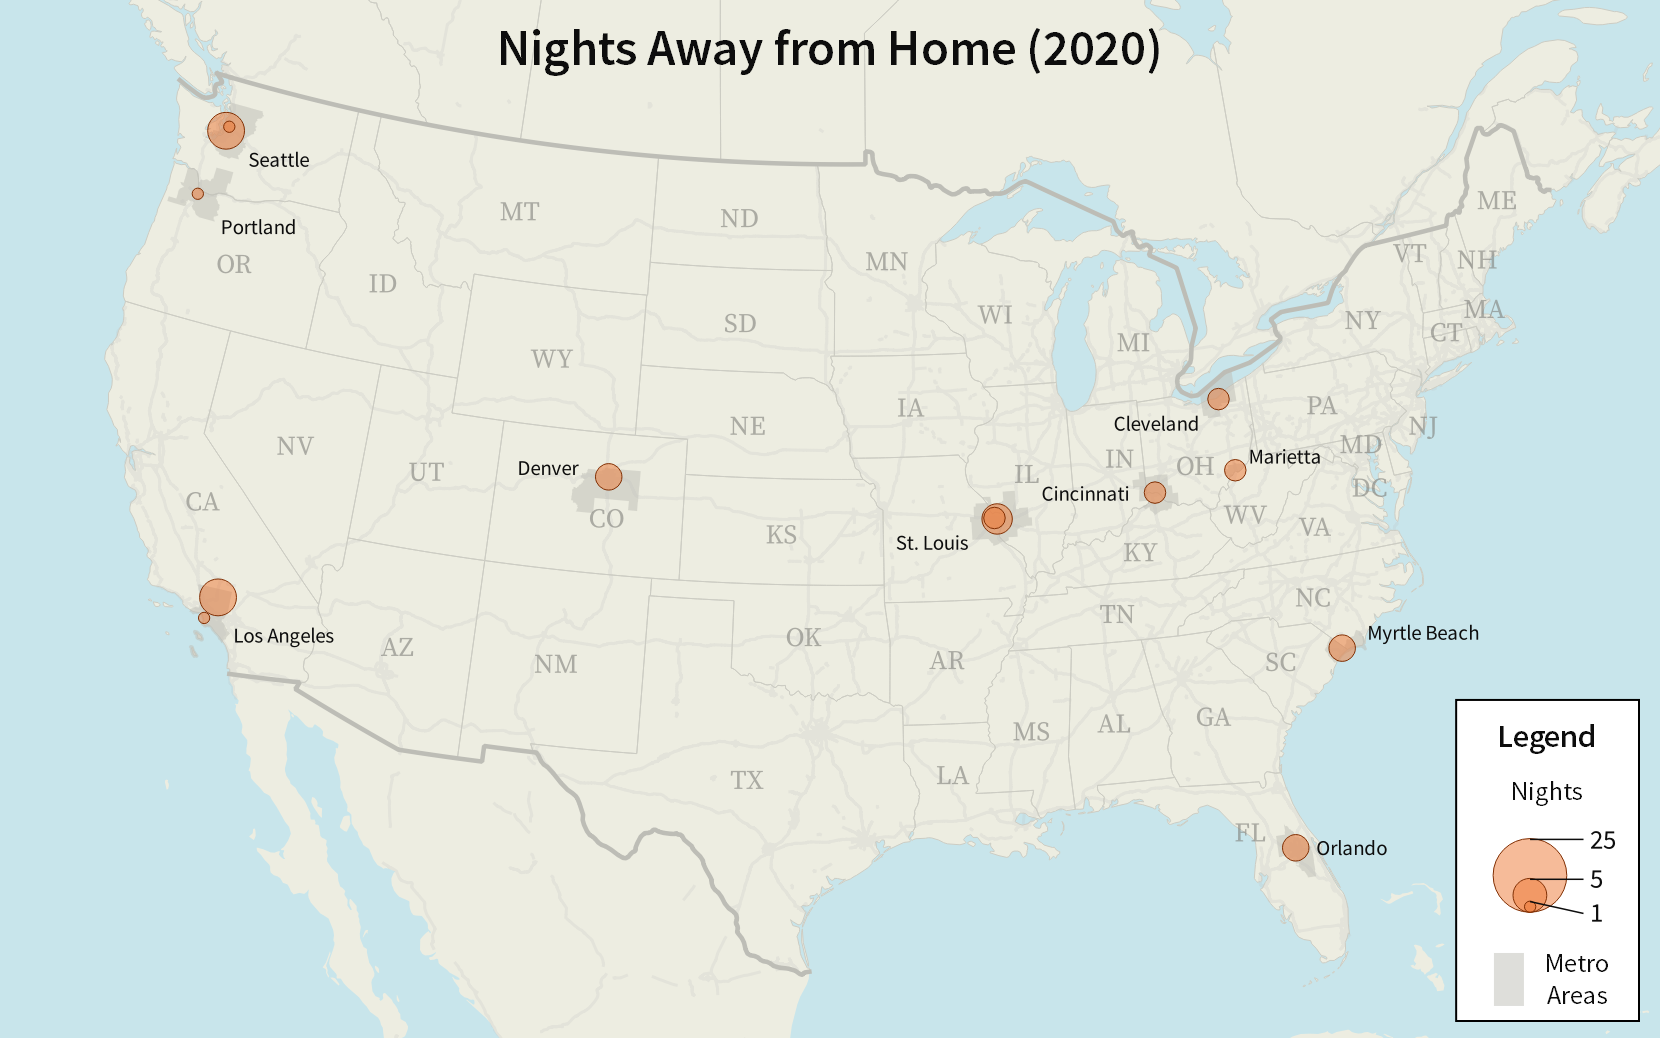 A map of the United States with circles showing how many nights I spent in various locations. The three largest circles are Seattle, the Mojave desert near Los Angeles, and St. Louis.